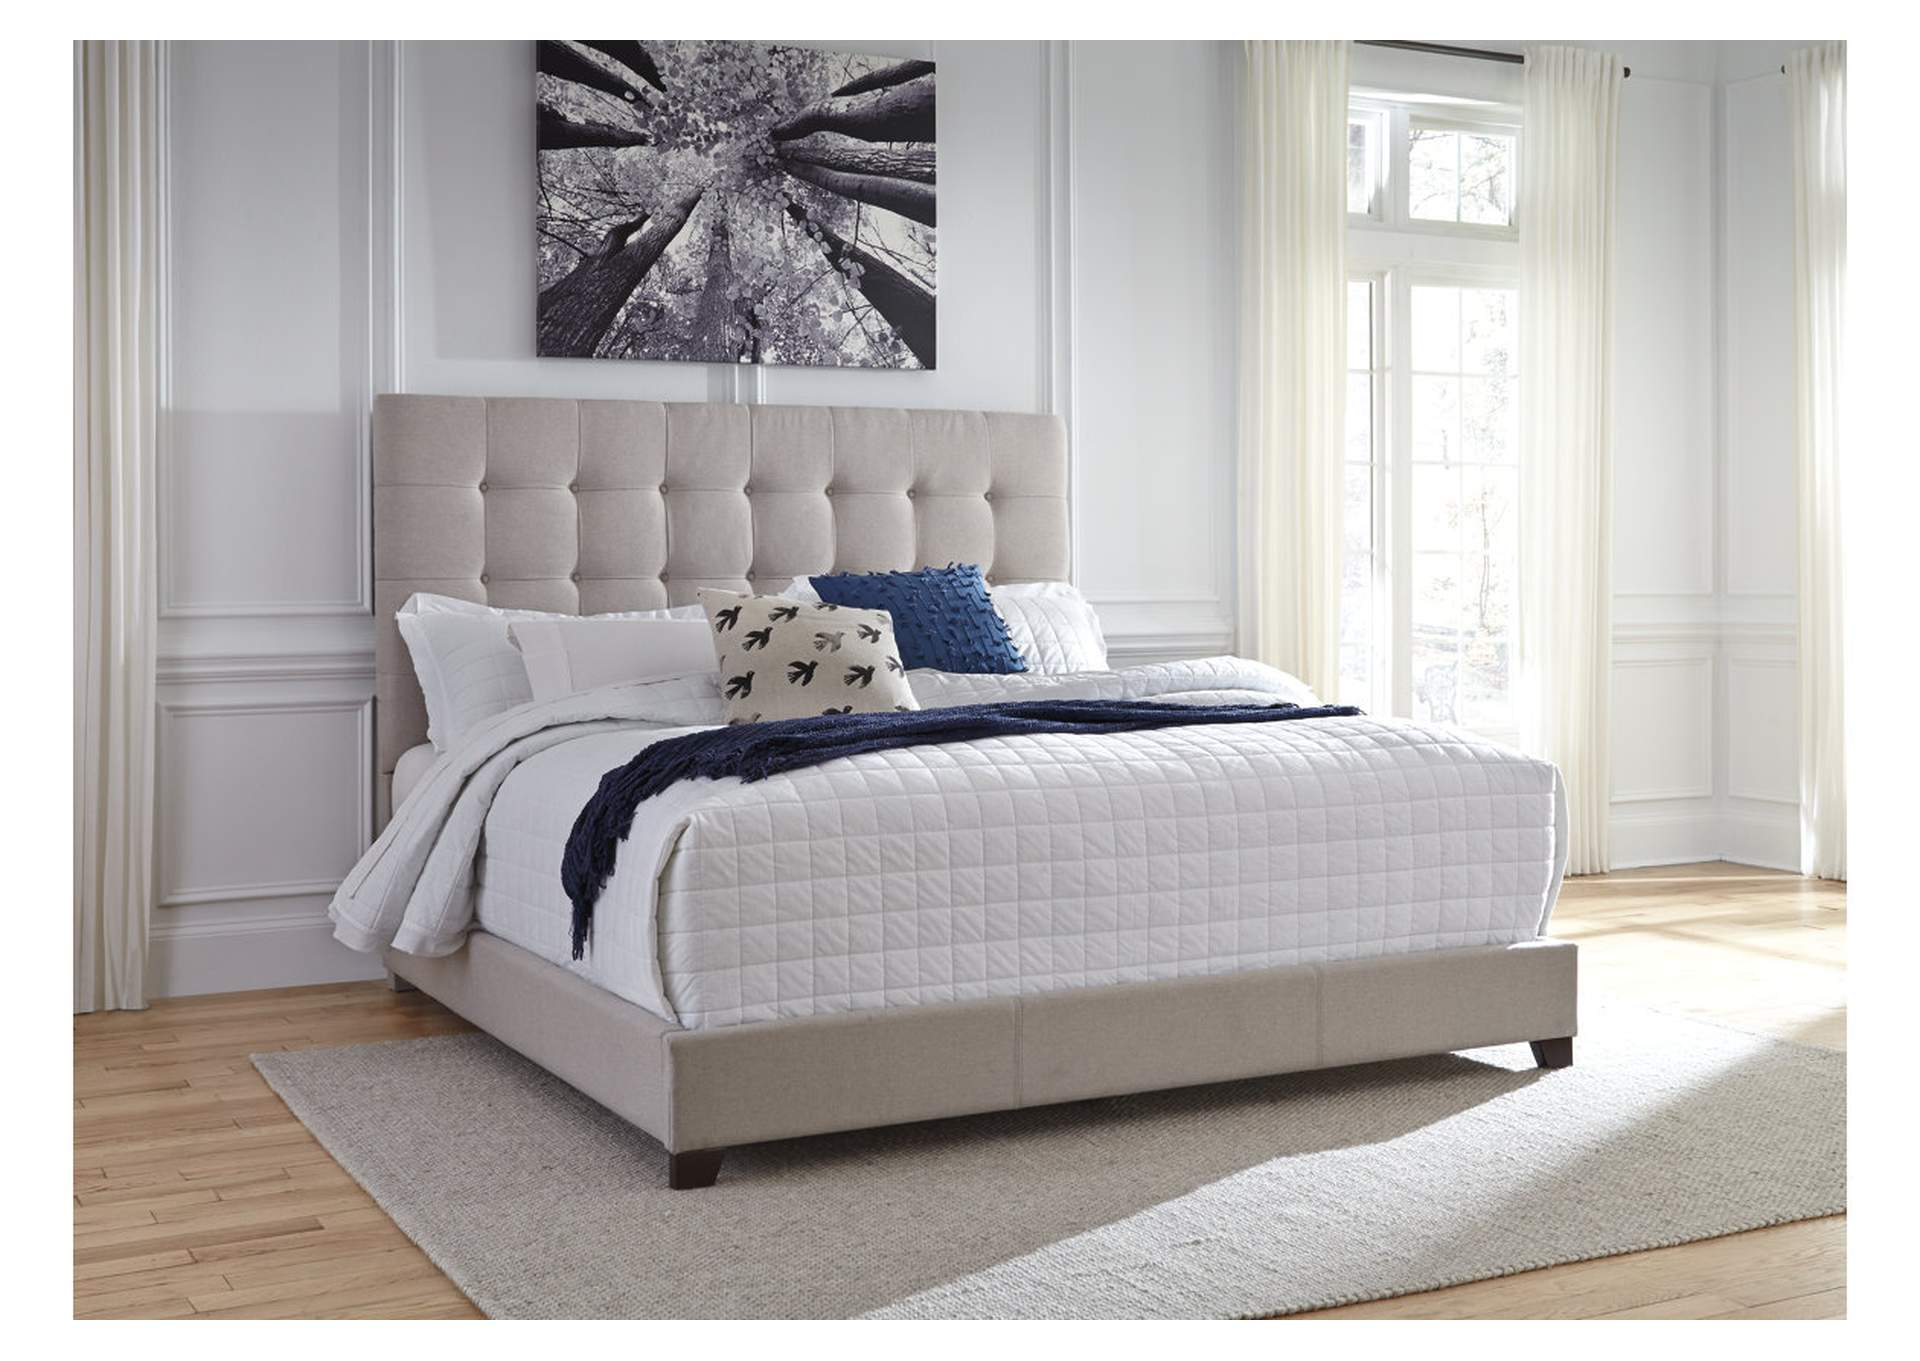 Beige King Upholstered Bed,Signature Design By Ashley